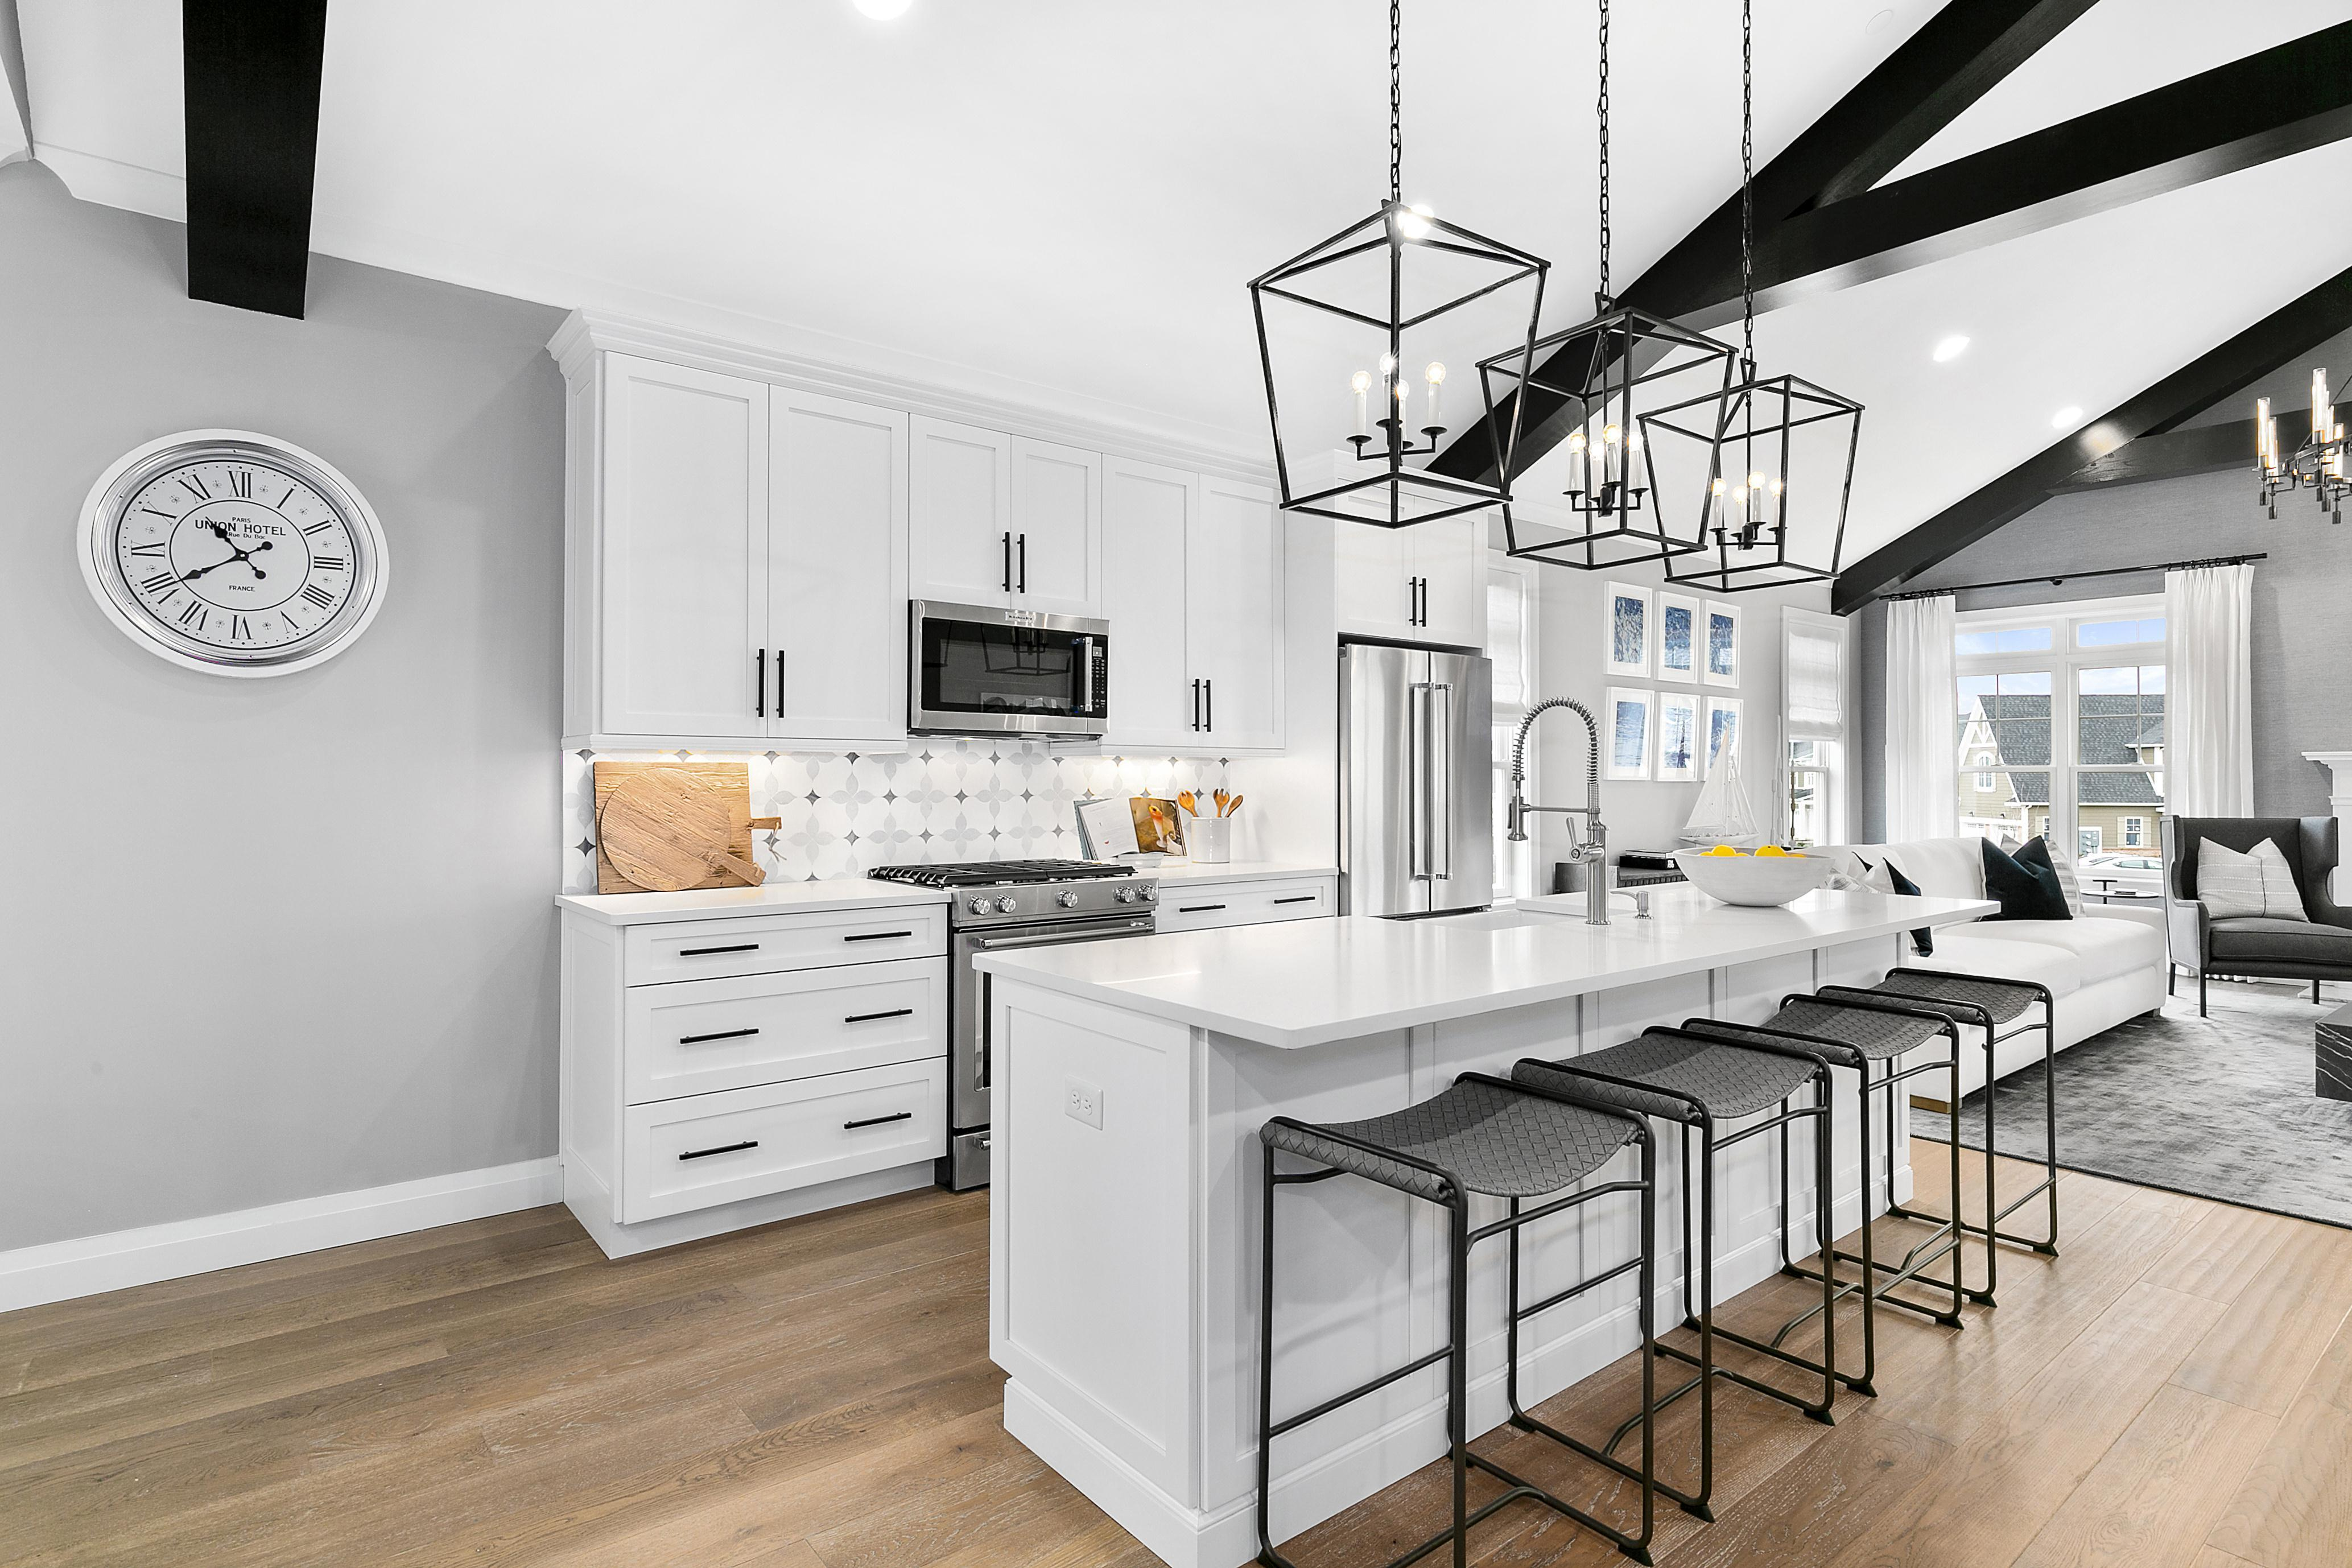 Kitchen featured in The Greenbrier By Beechwood Homes in Nassau-Suffolk, NY